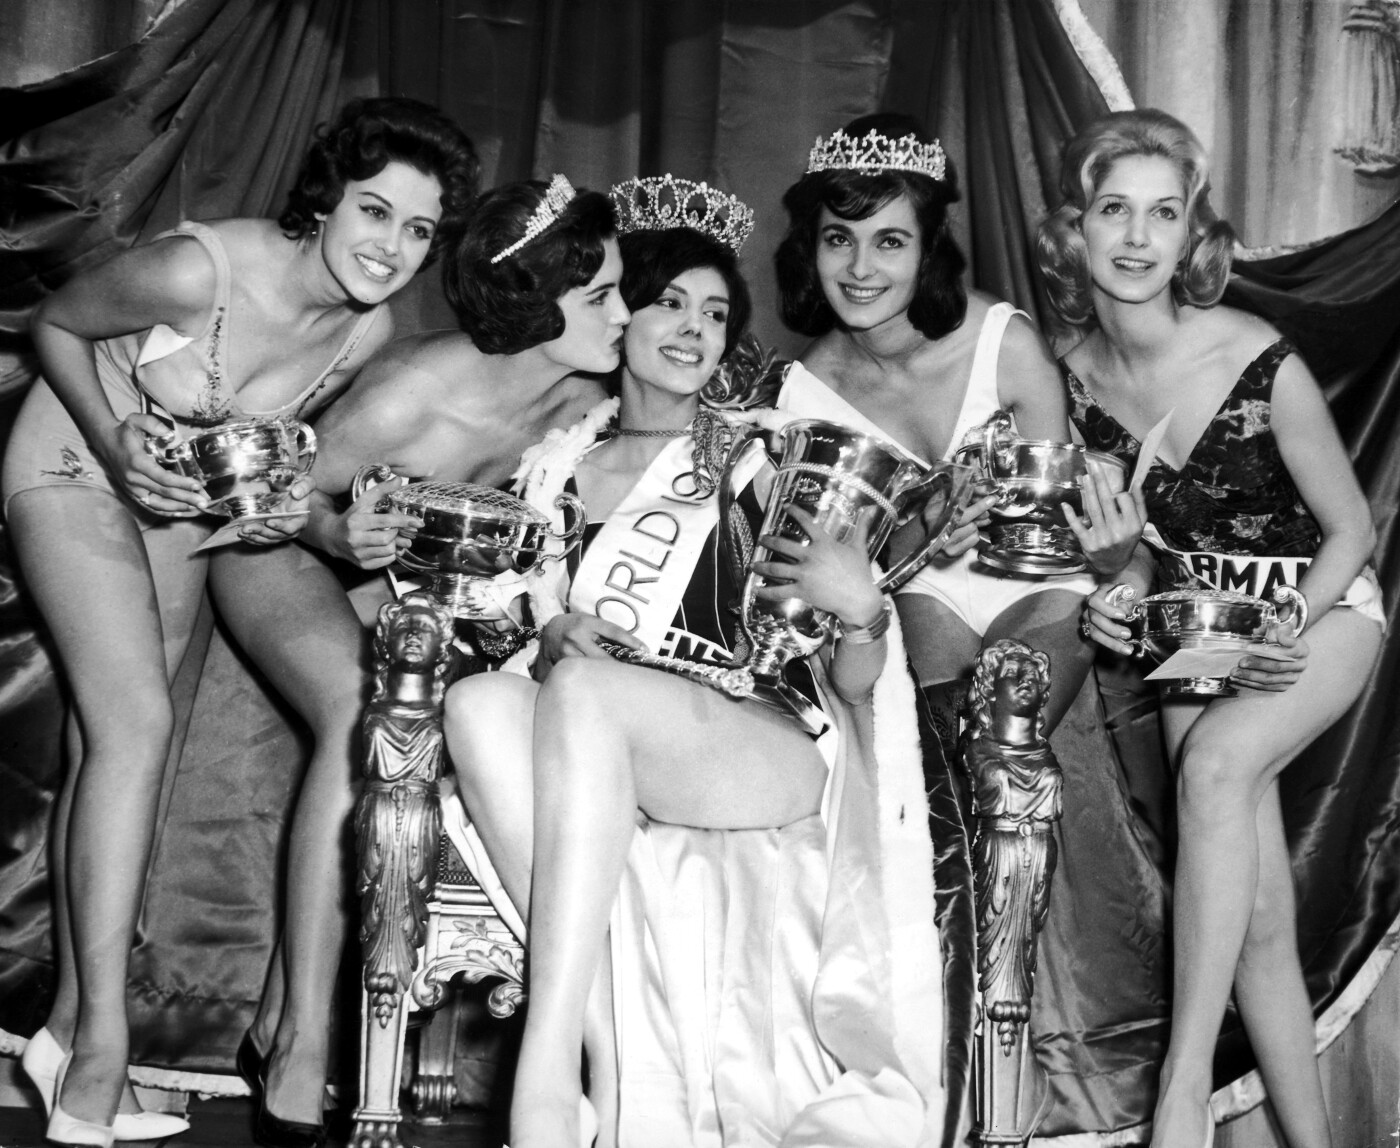 Amadee Chabot Wikipedia miss south africa 1956-2016 (incl. all mw & miss universe